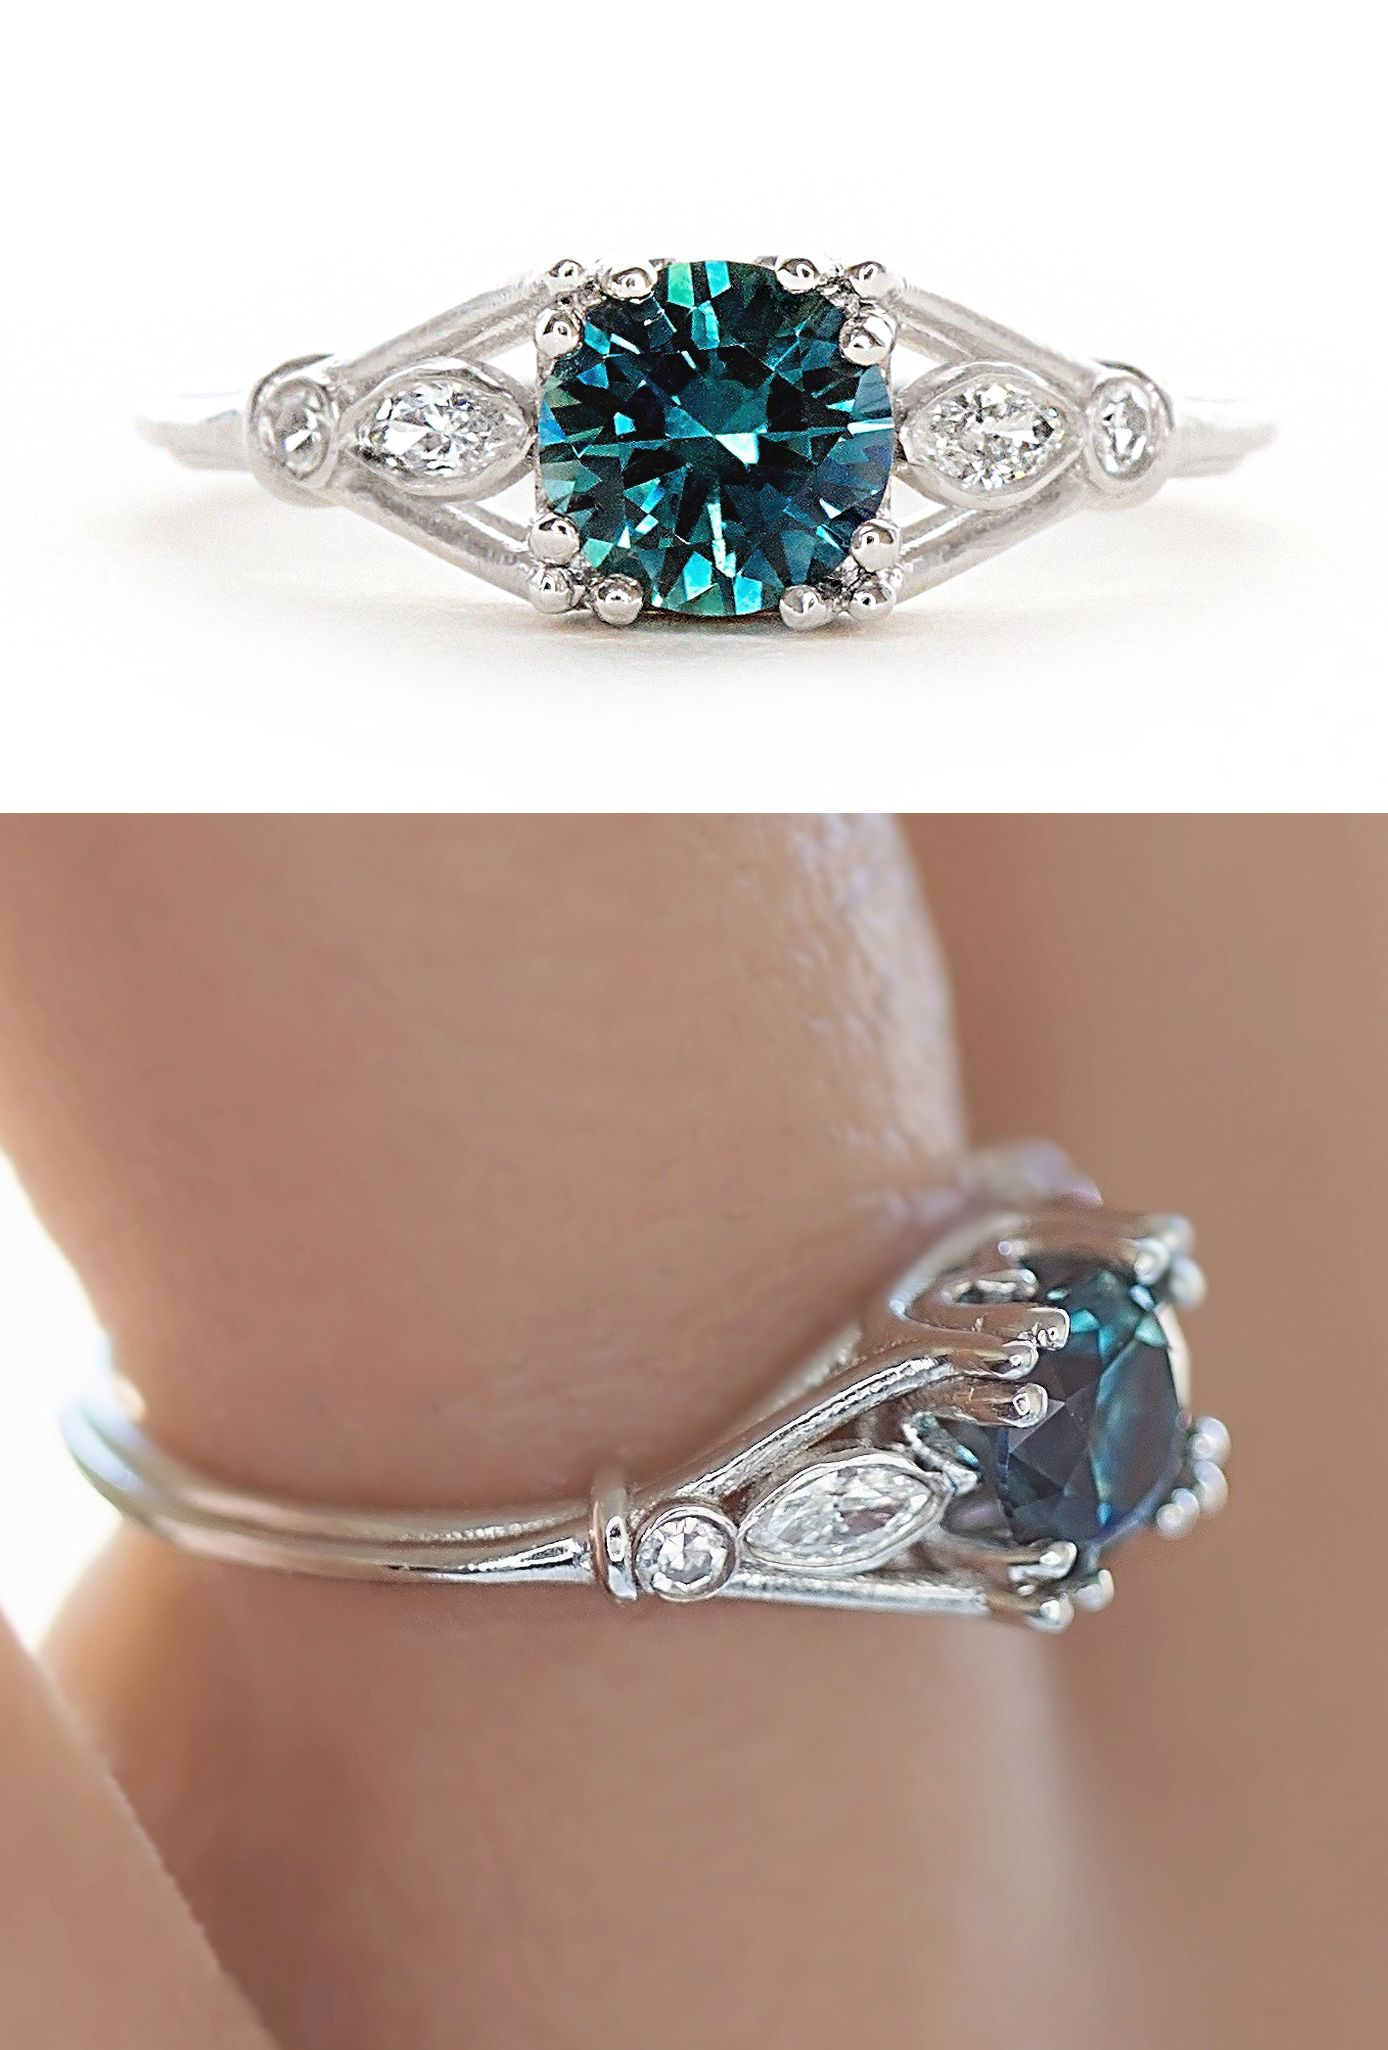 Recycled Platinum Wisping Teal Montana Sapphire Ring